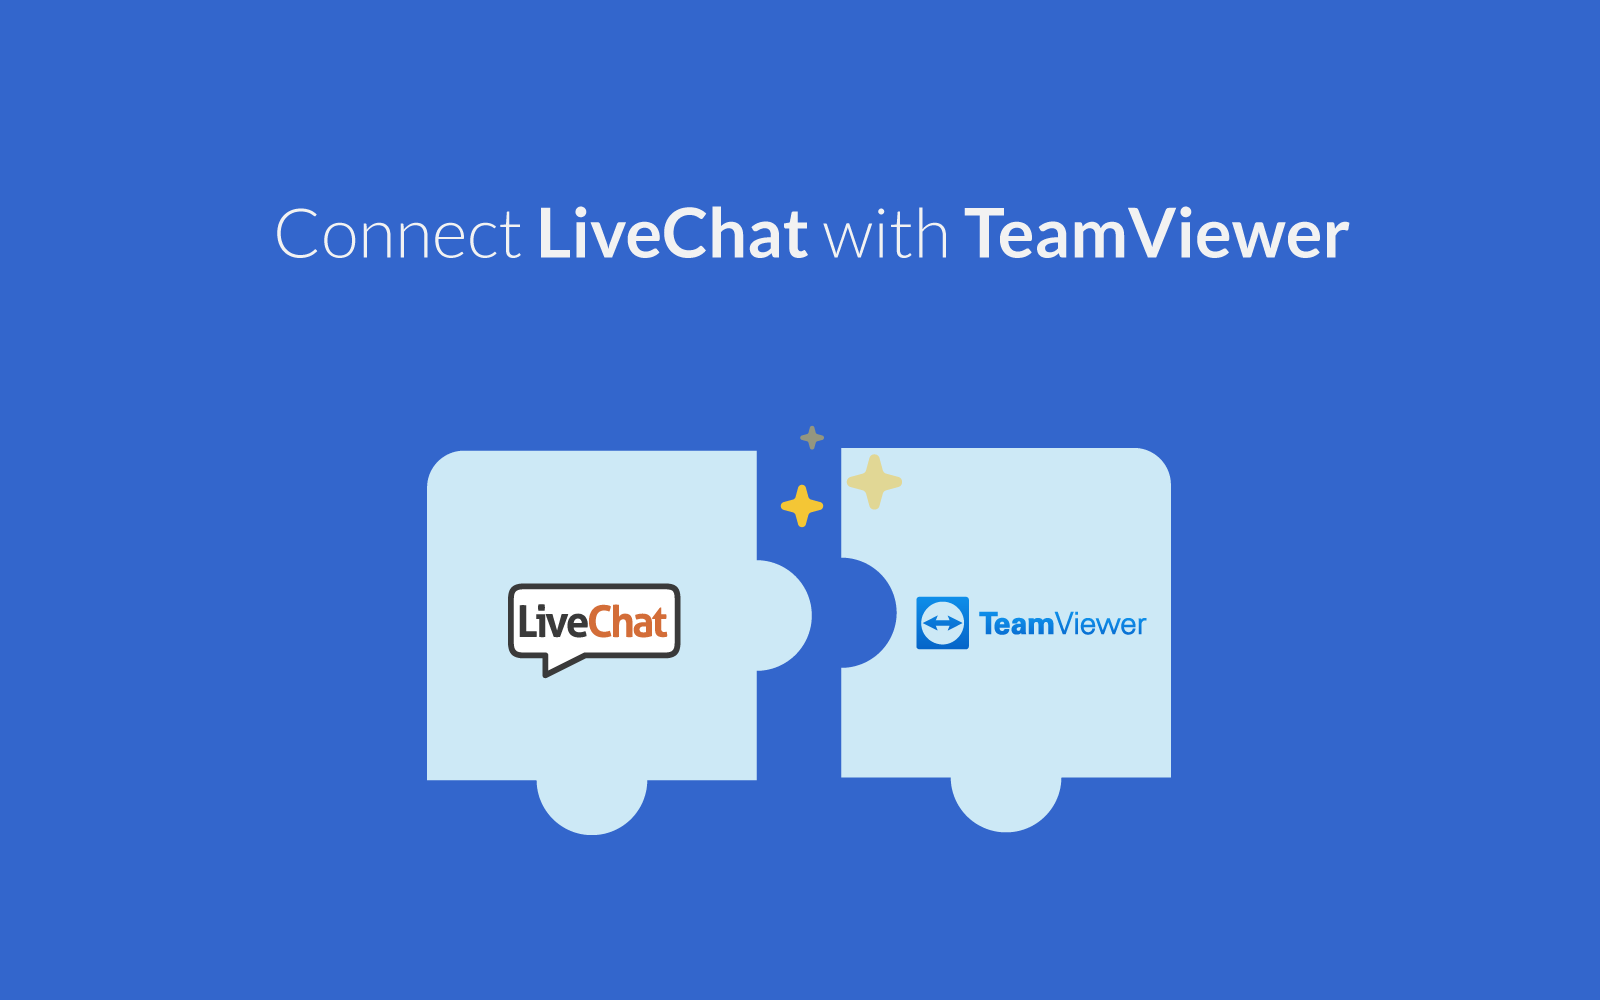 TeamViewer integration